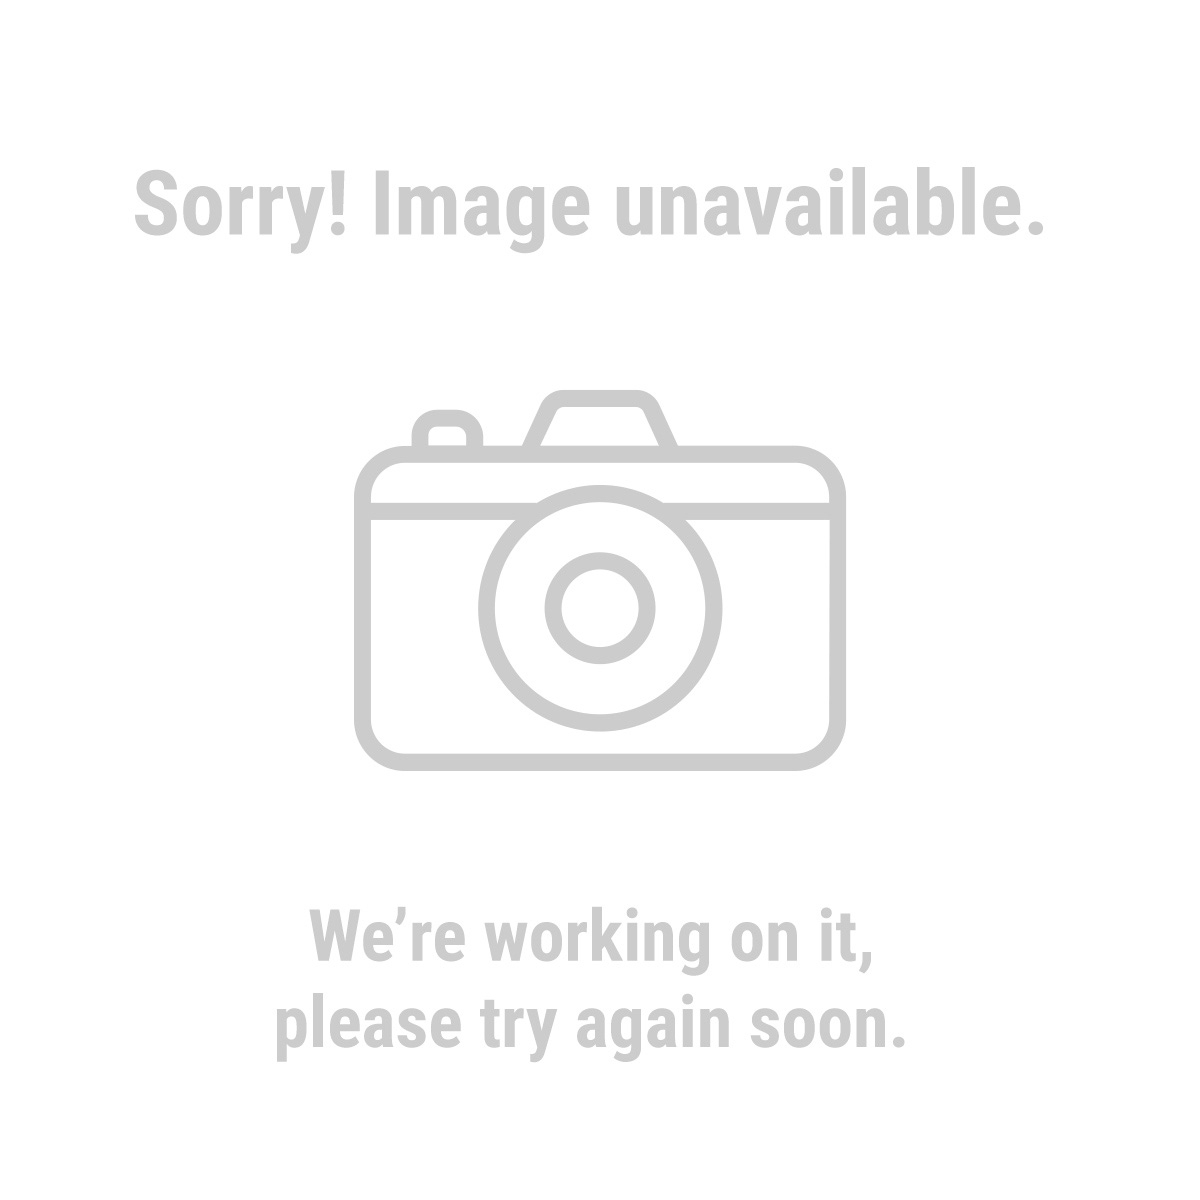 Haul Master Automotive 69623 500 Lb. Deluxe Cargo Carrier